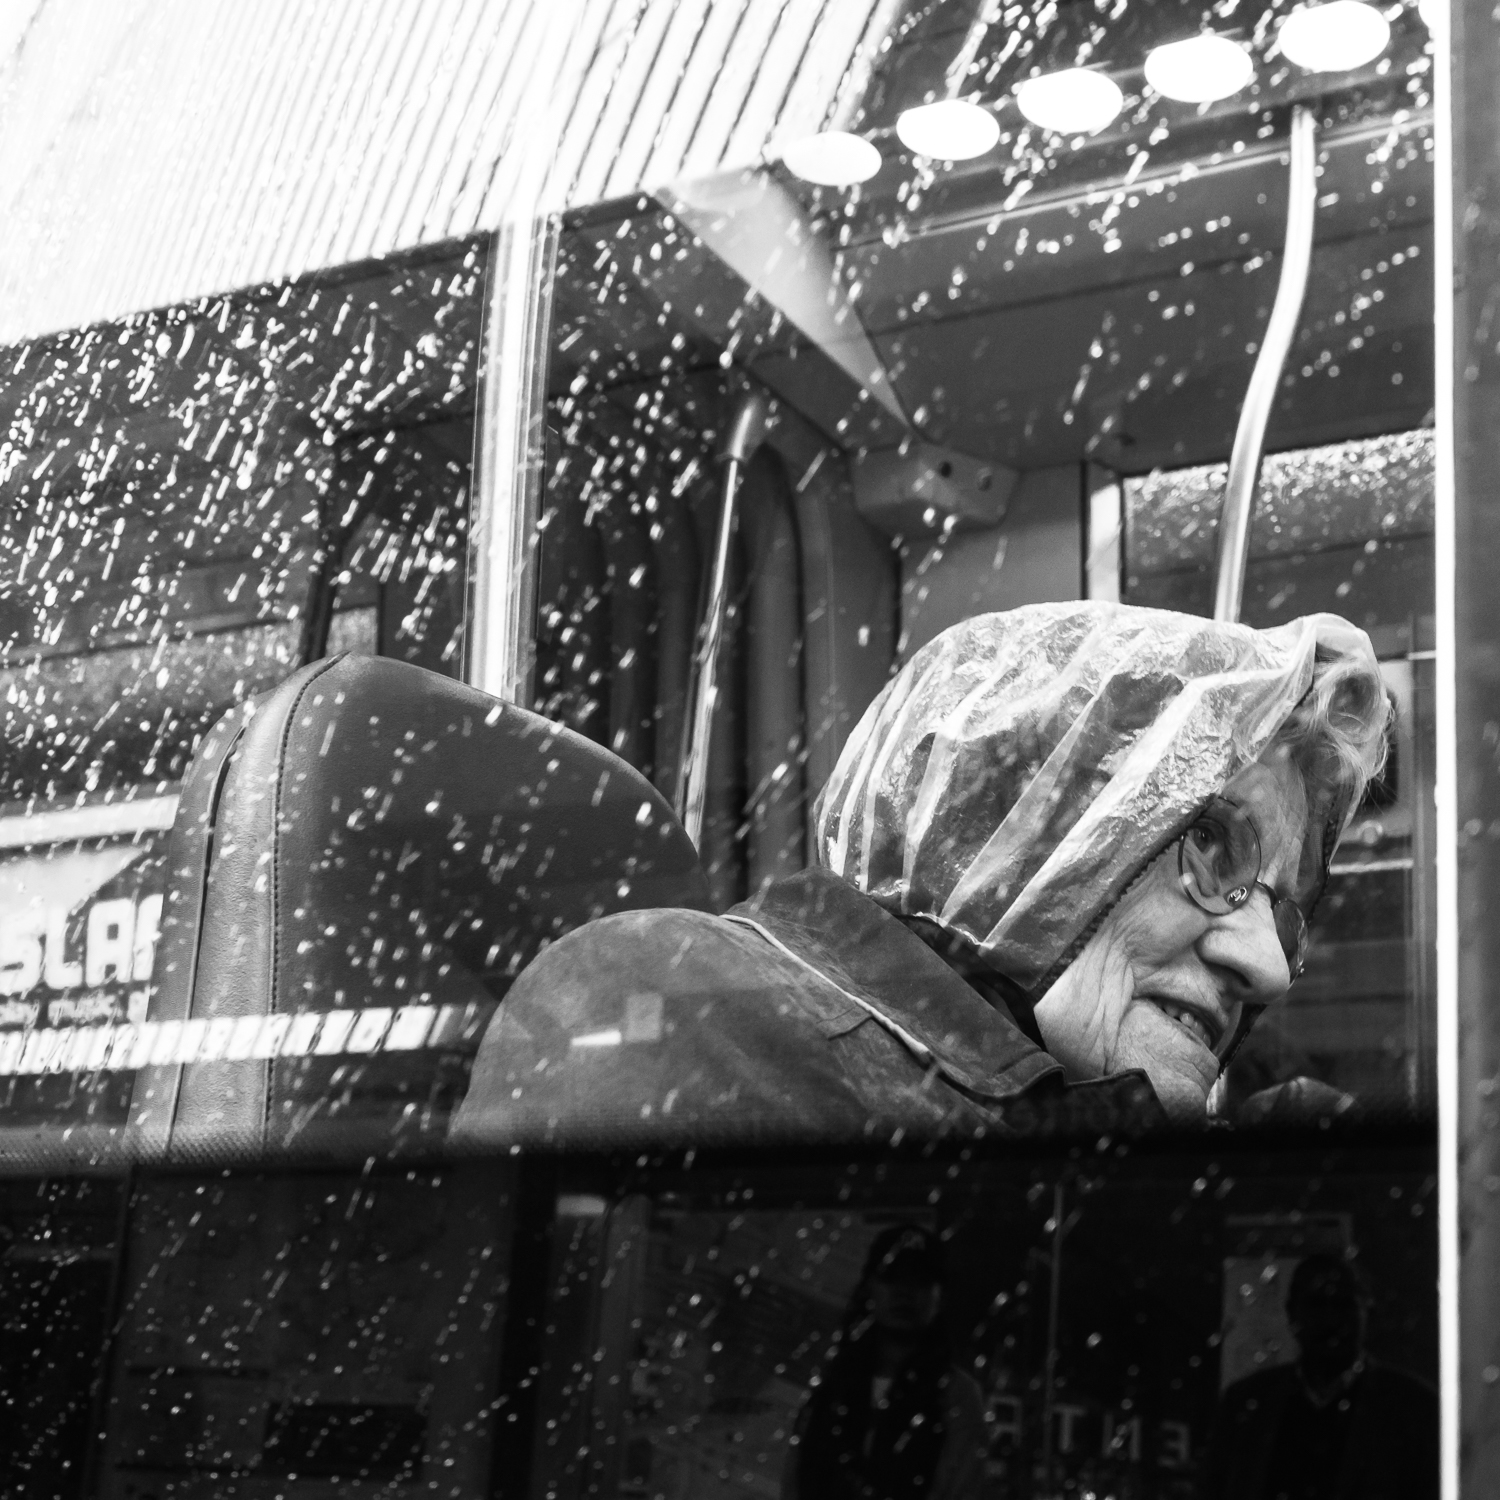 Photo taken in Rotterdam in May 2017 during a workshop I teached. I had some help from one of my participants who stepped into the tram to take a picture of this woman. She smiled very friendly and I like this shot. The rain on the window is always a bonus.  Shot with Olympus OMD1 Mark 2 and Olympus 17mm f/1.8.